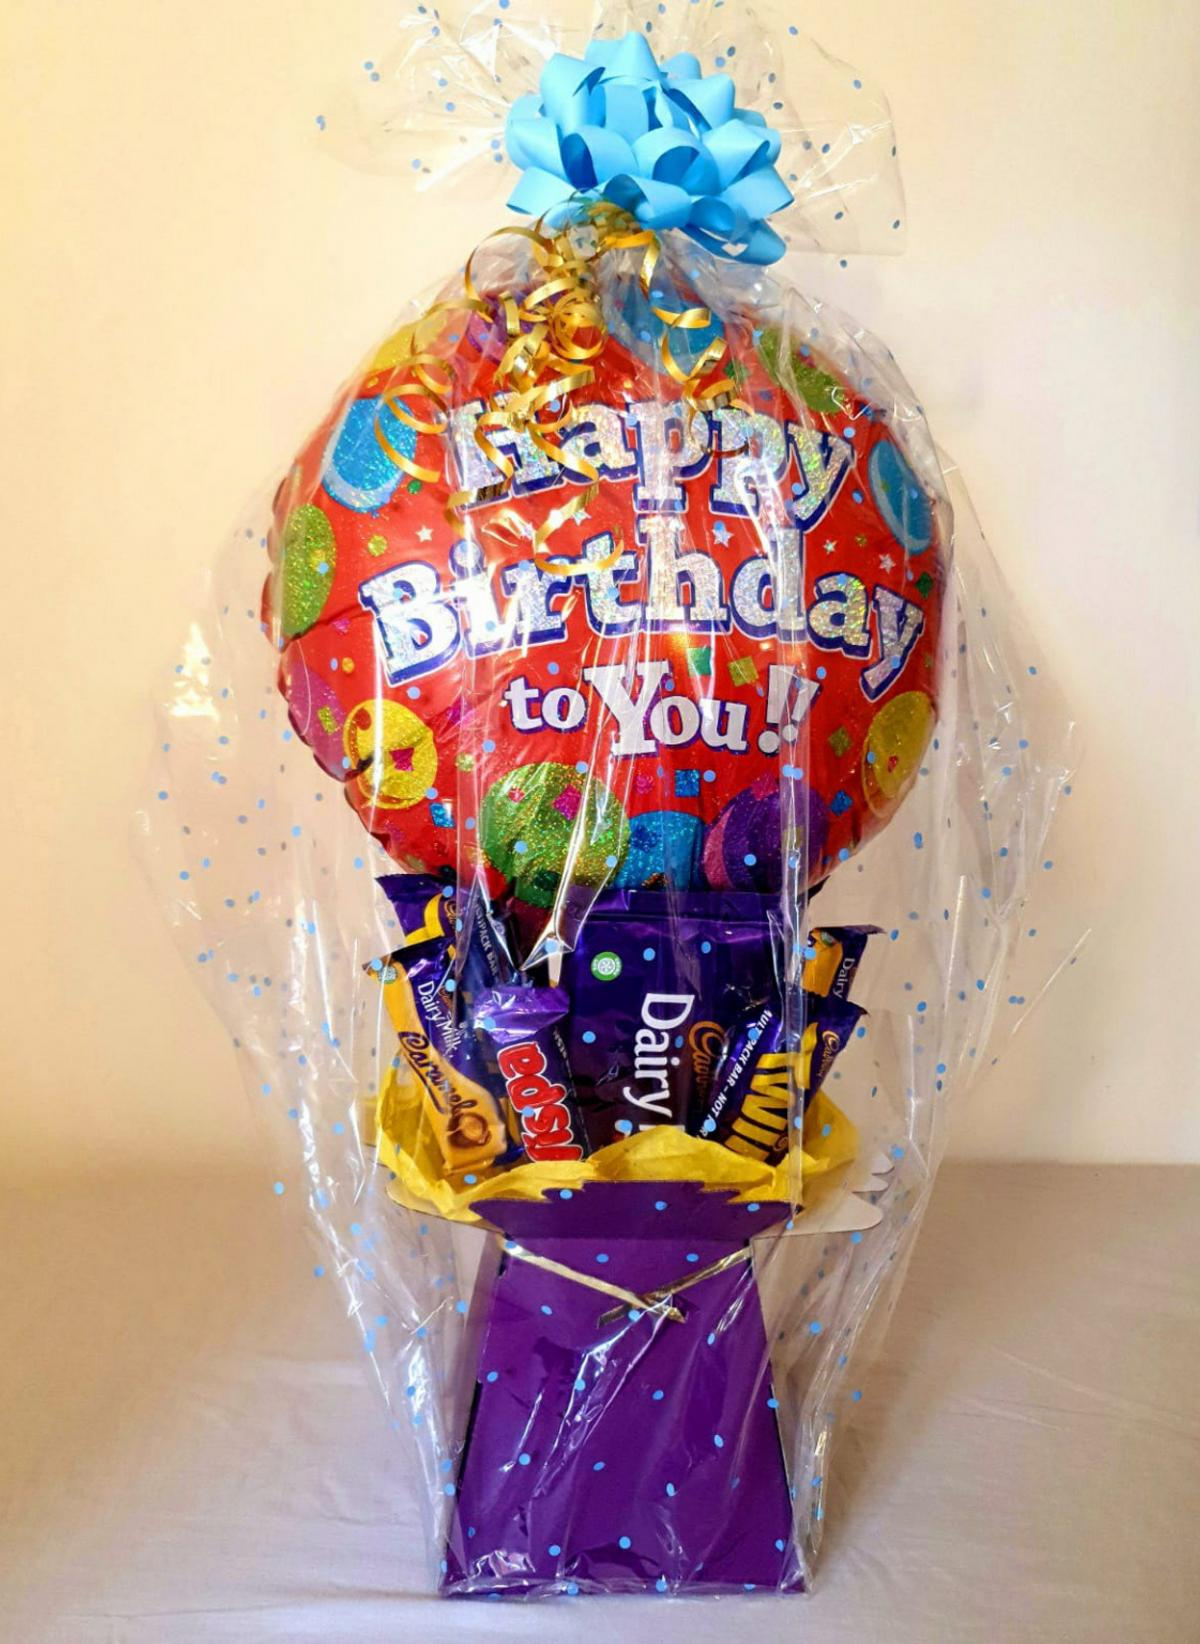 Hamper Chocolate Baskets In Dy1 Dudley For 15 00 For Sale Shpock